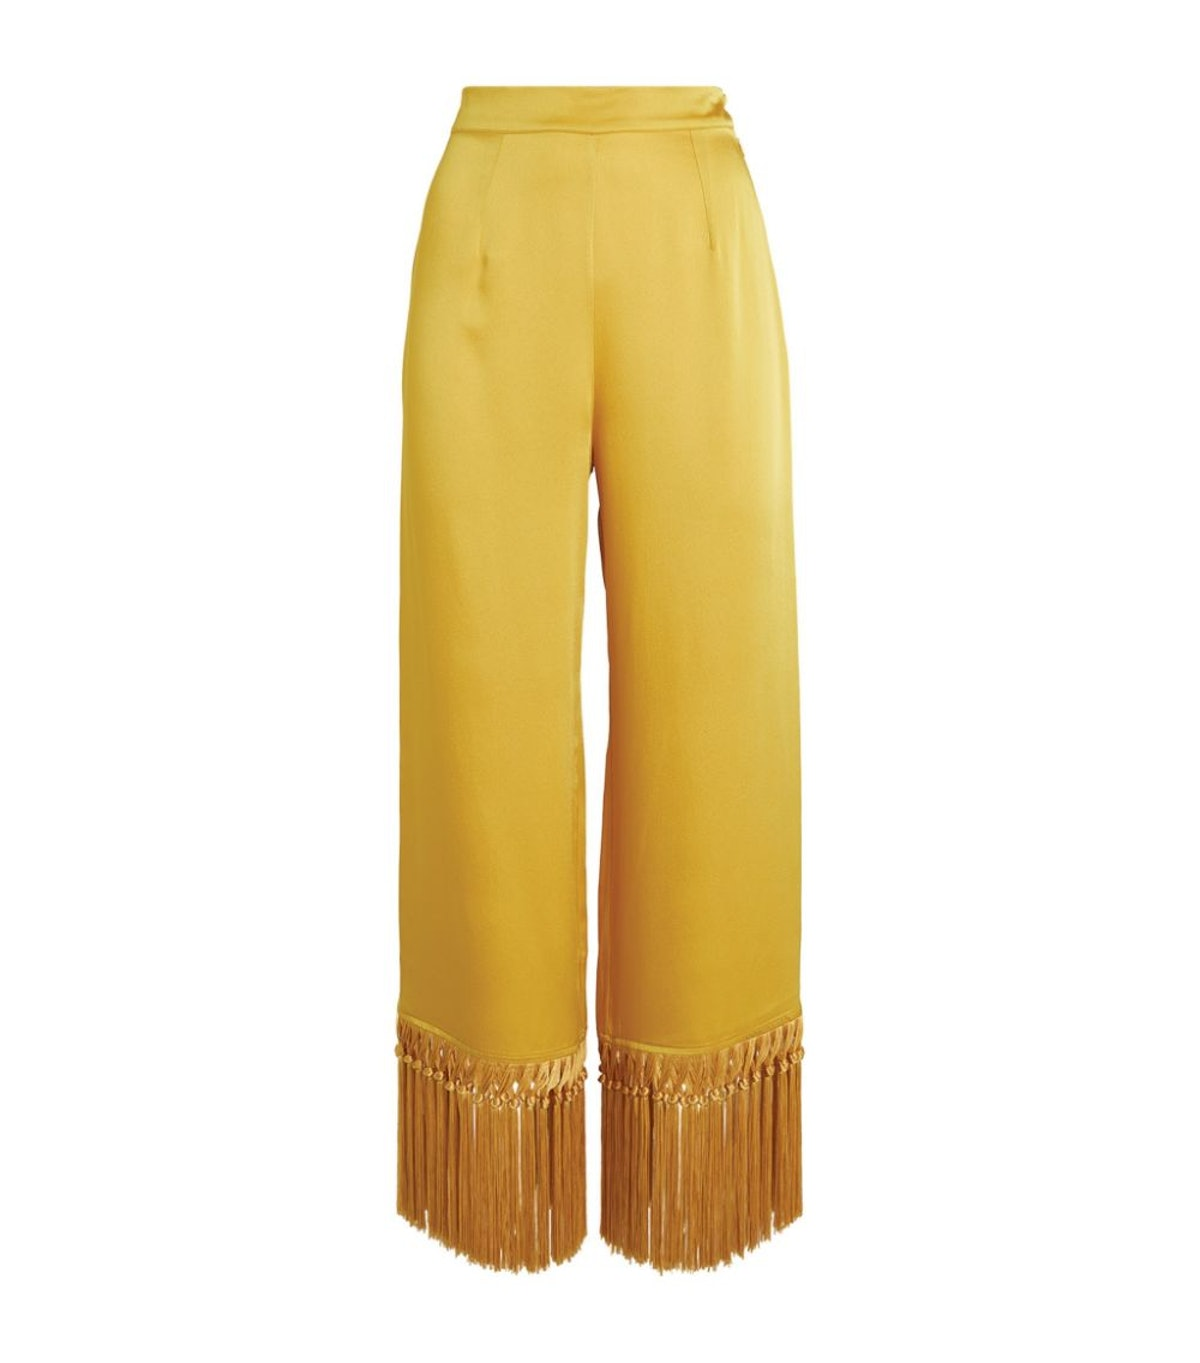 Fringed Tulum Trousers from Taller Marmo.